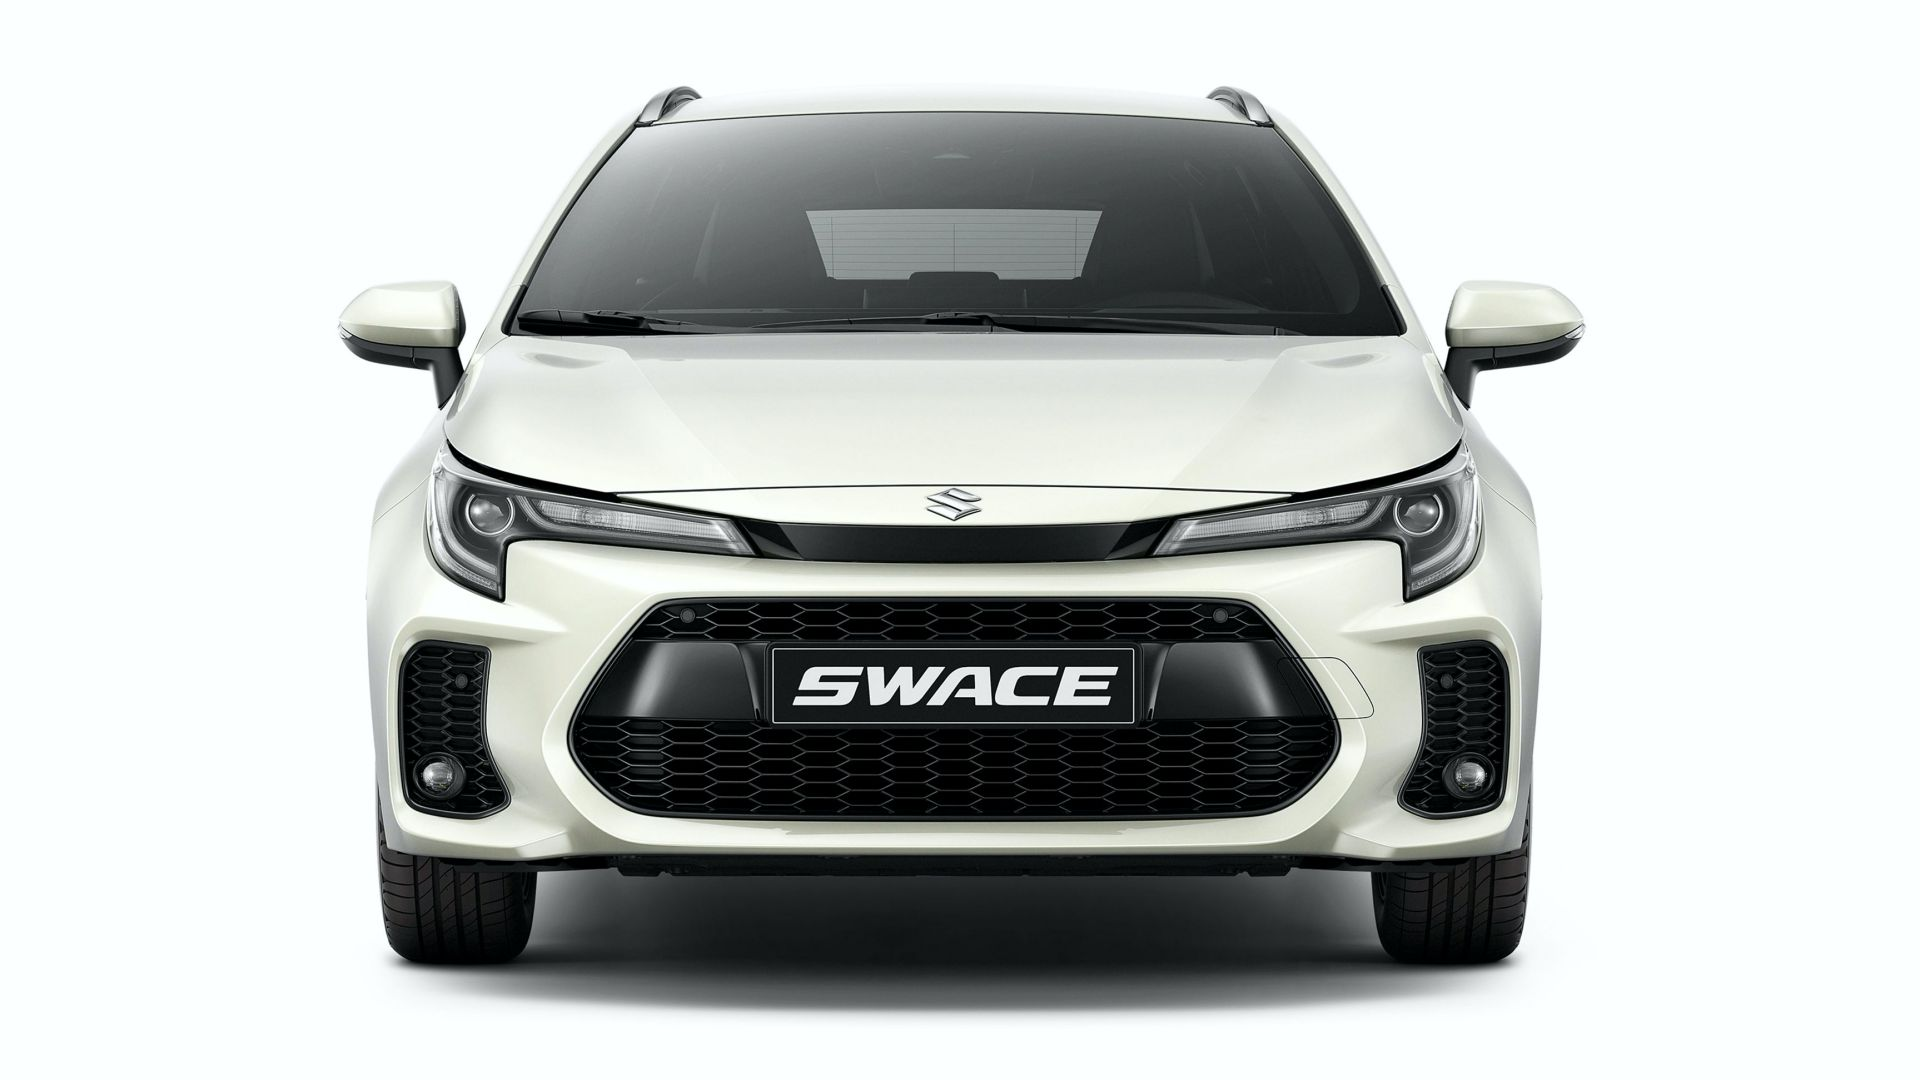 "The estate-shaped Toyota Corolla is underway to the Old World markets now, but don't expect to see it with the old badge: it is ""Suzuki Swace"" now, thank you very much."